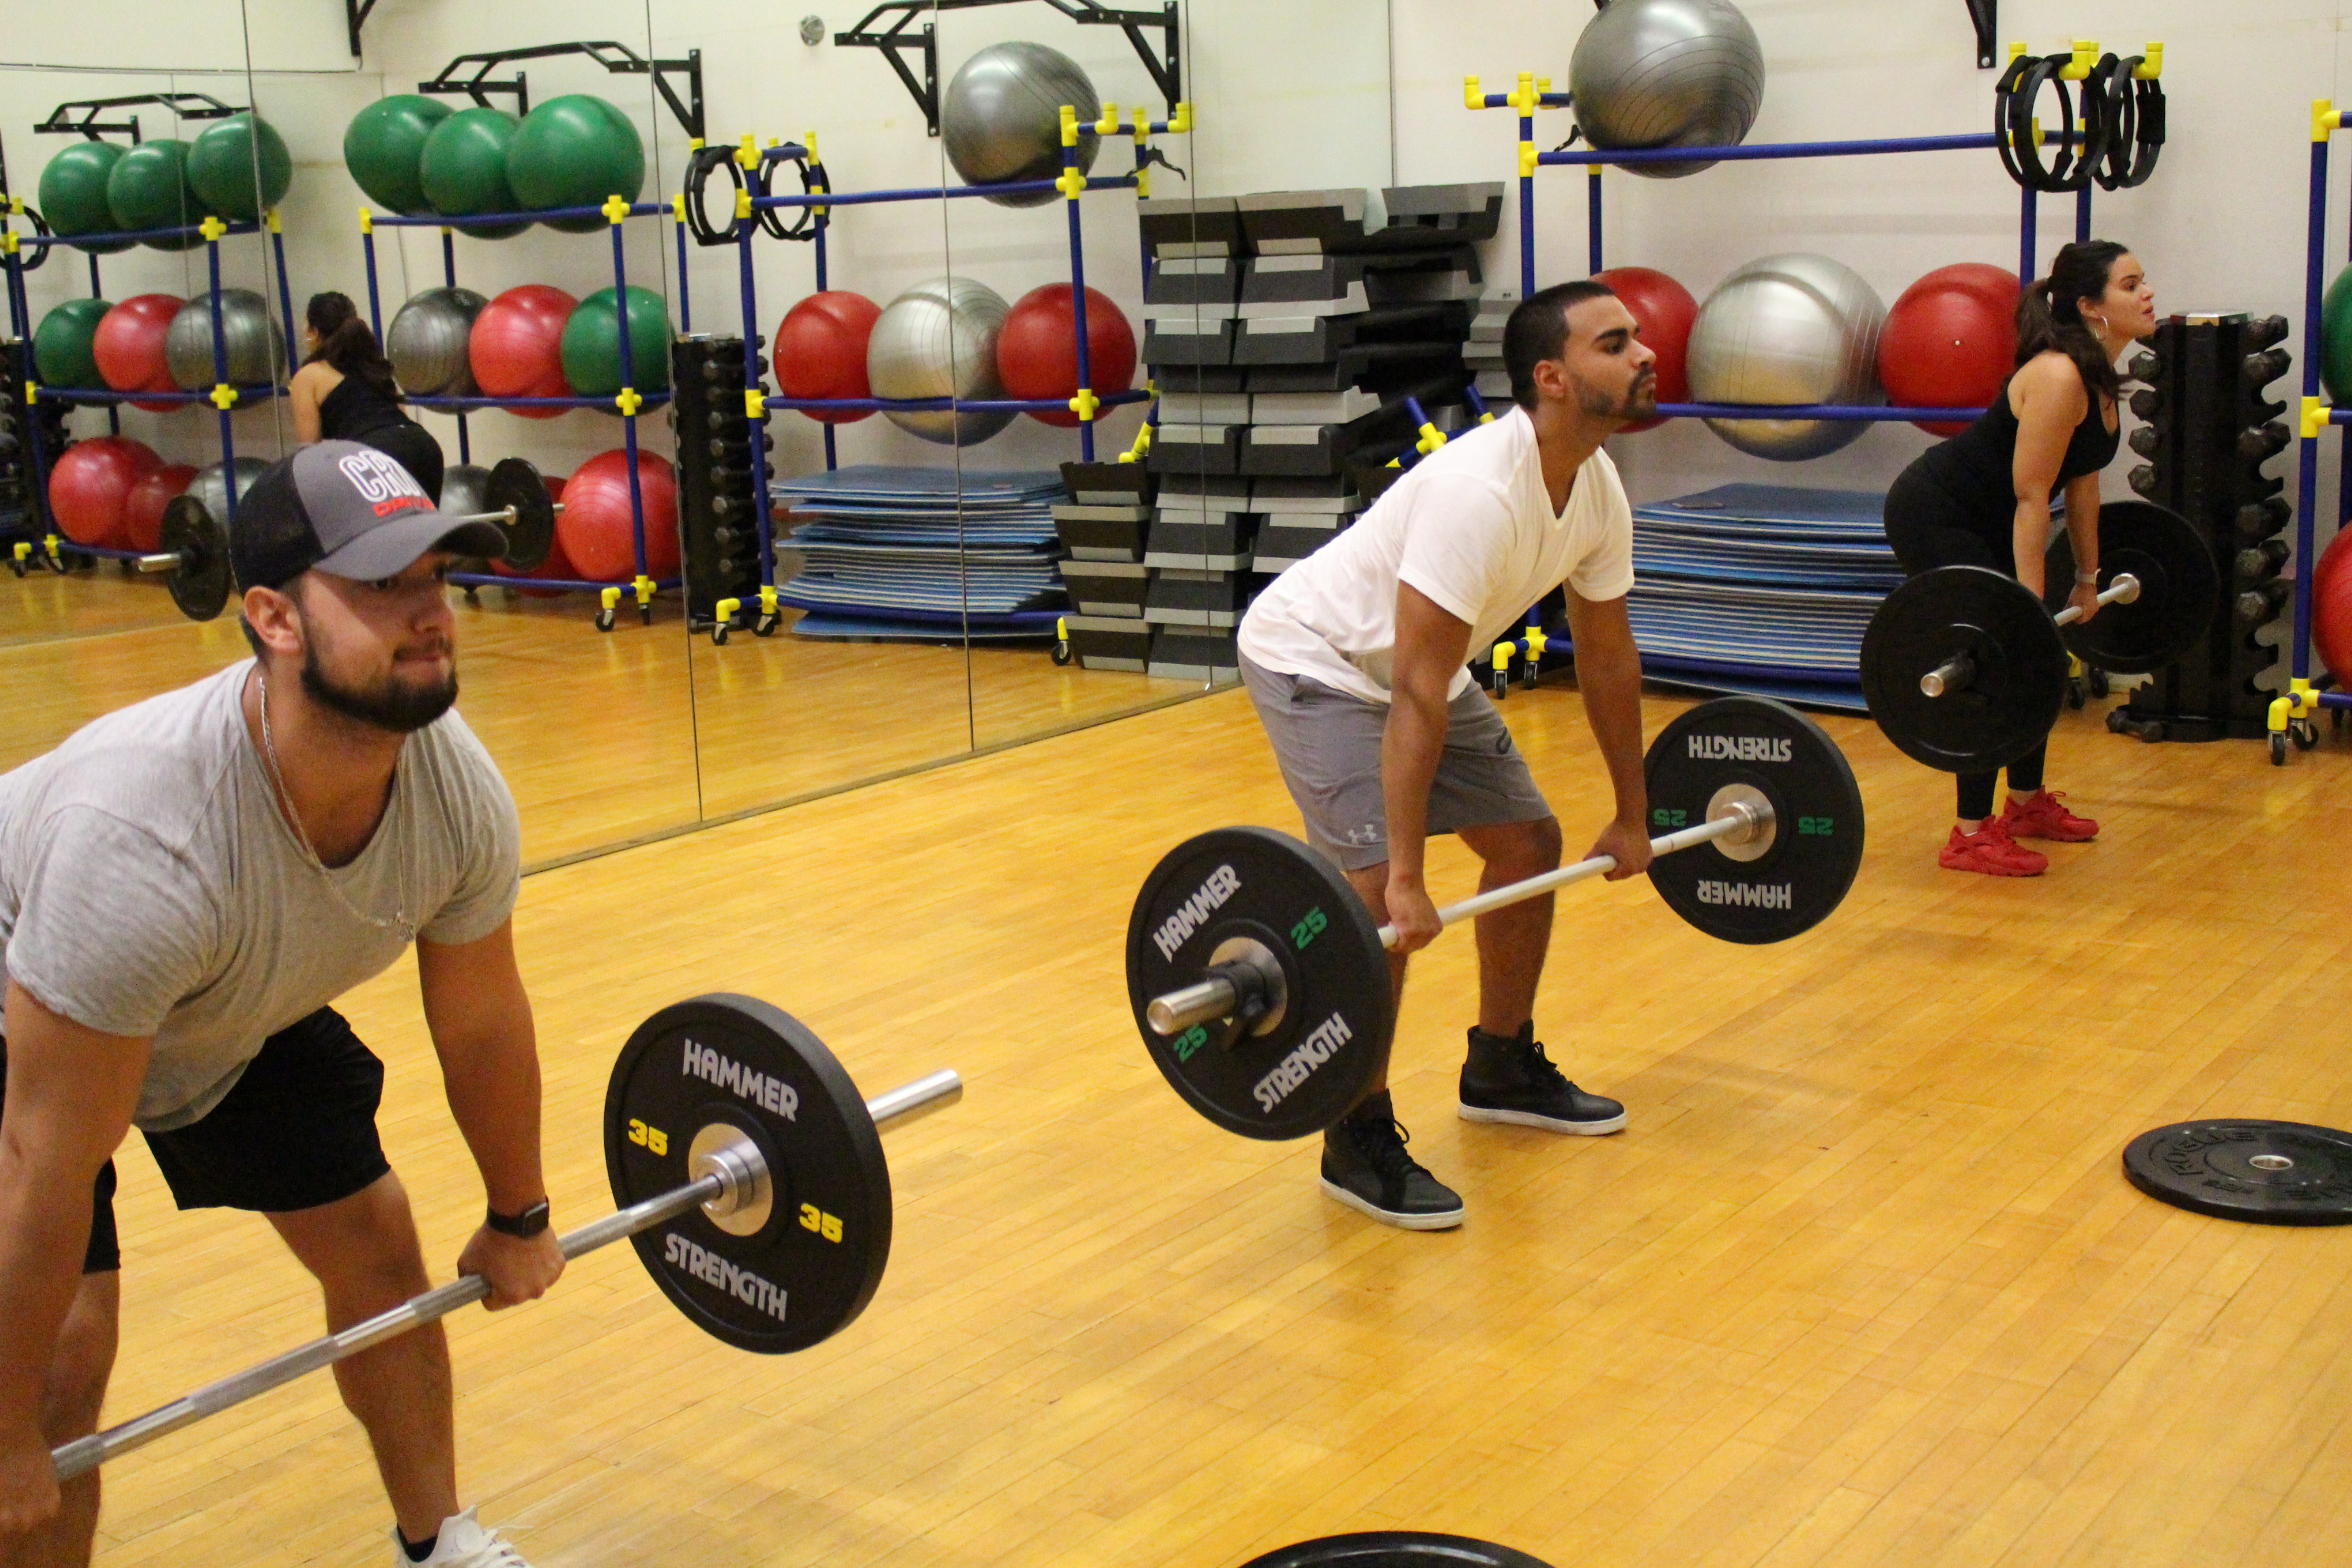 Fitness Center - The Riverdale Y